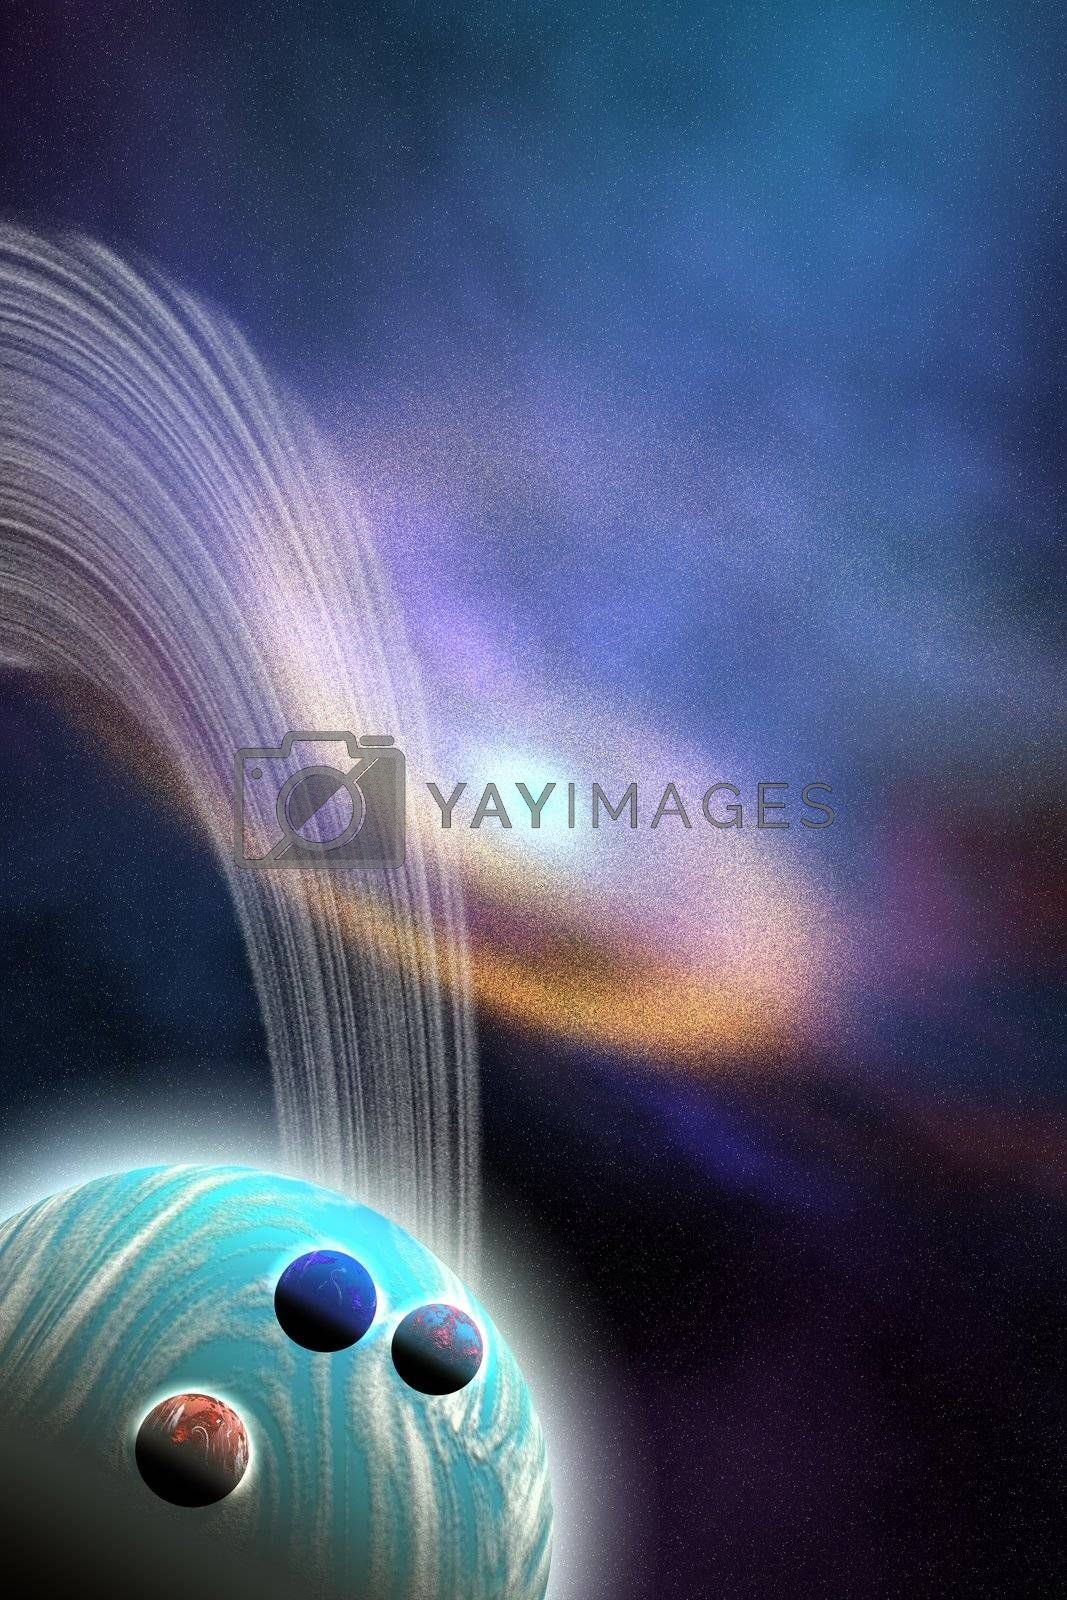 A swirl galaxy is near this ringed planet and its moons.